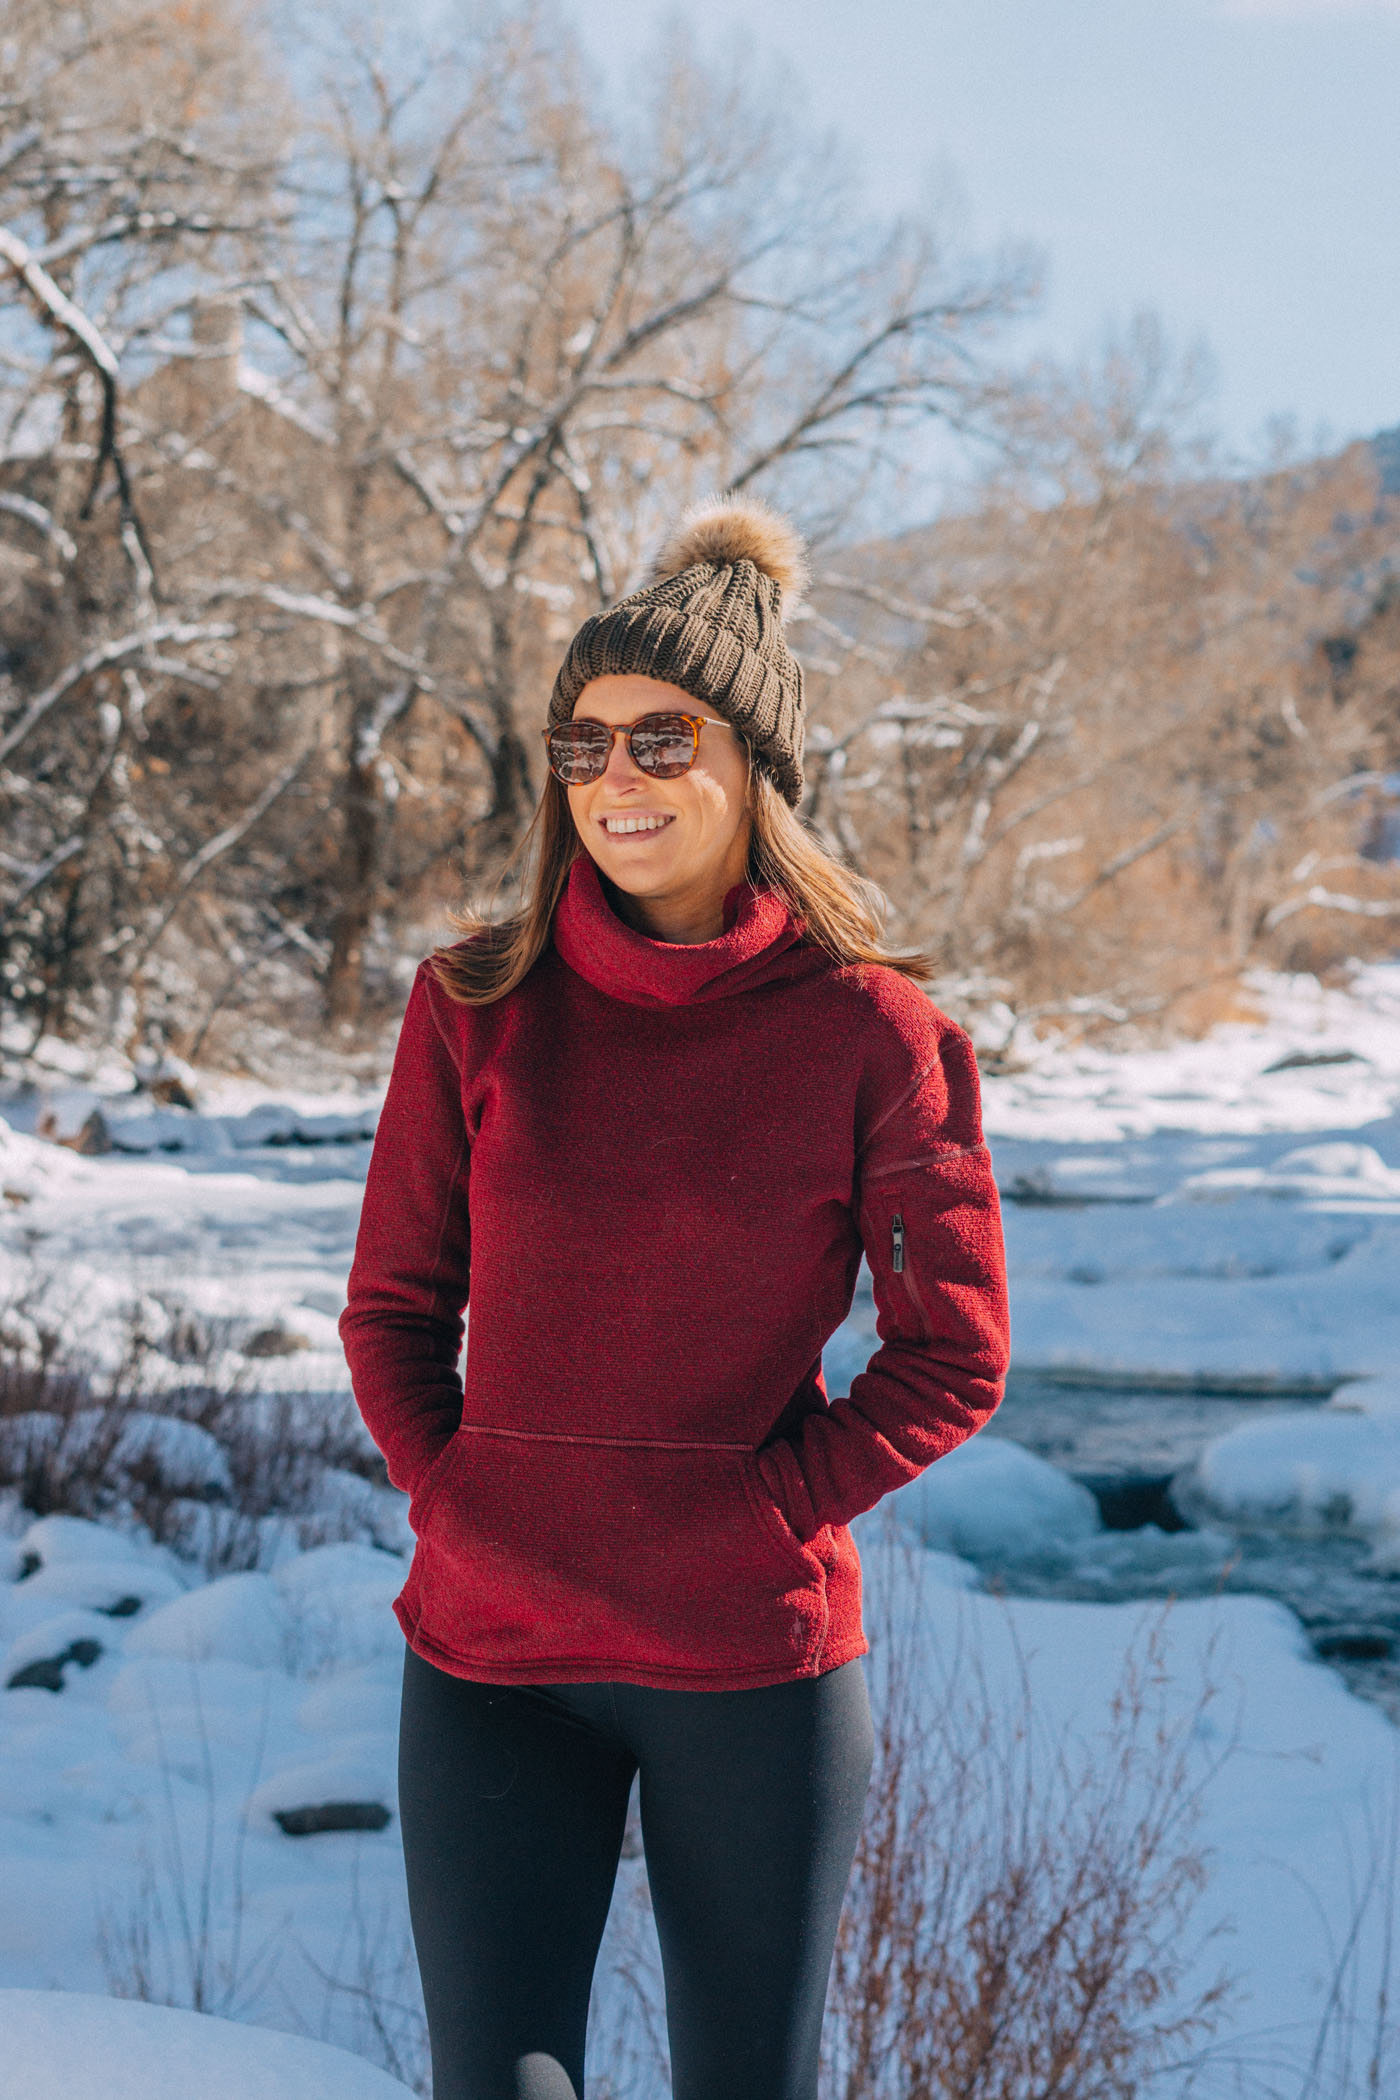 Go-to Winter Style: Cozy Pullover